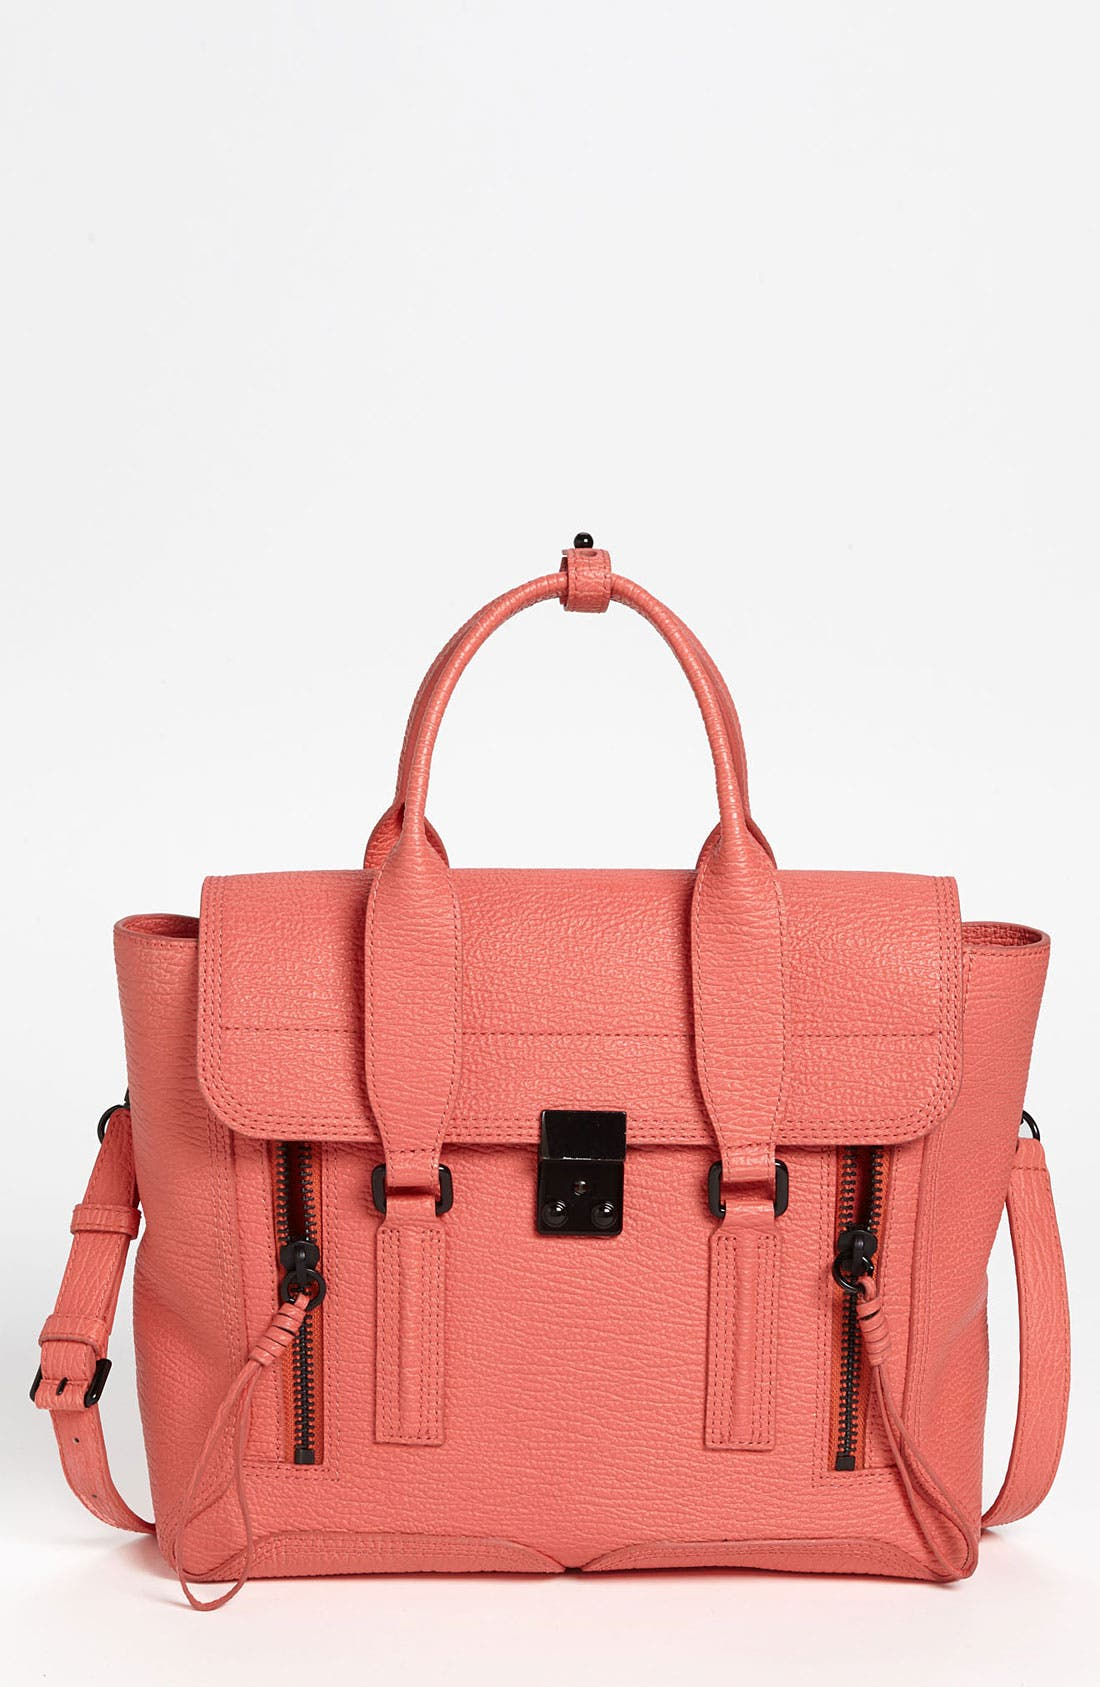 Main Image - 3.1 Phillip Lim 'Medium Pashli' Leather Satchel